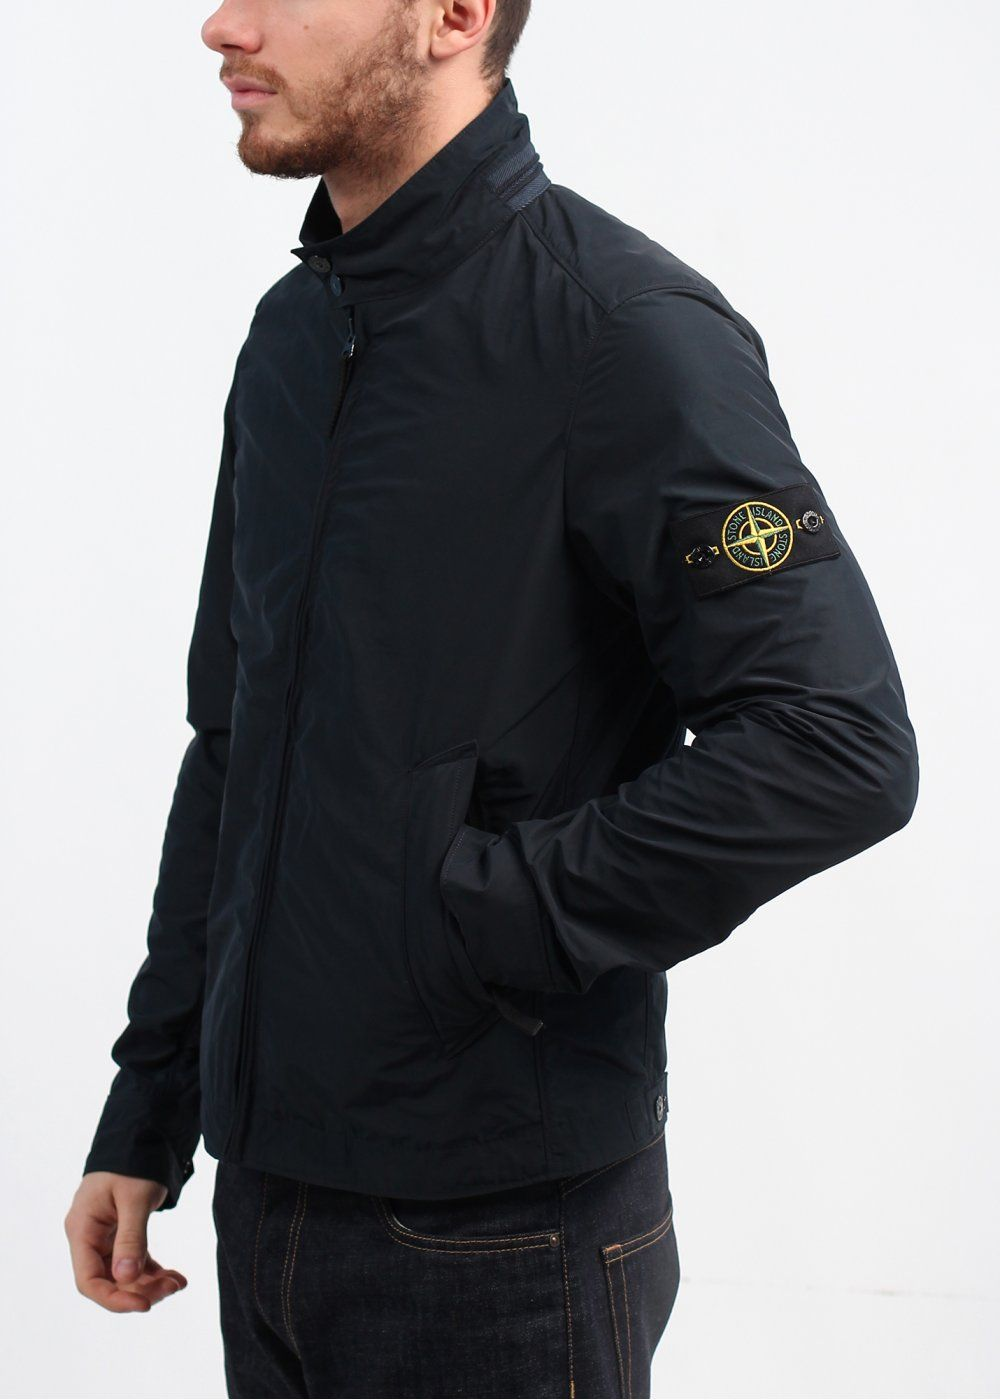 b1d14aedc62c54 Shop for discount stone island jackets, coats at cheapest price and free  shipping. 2016